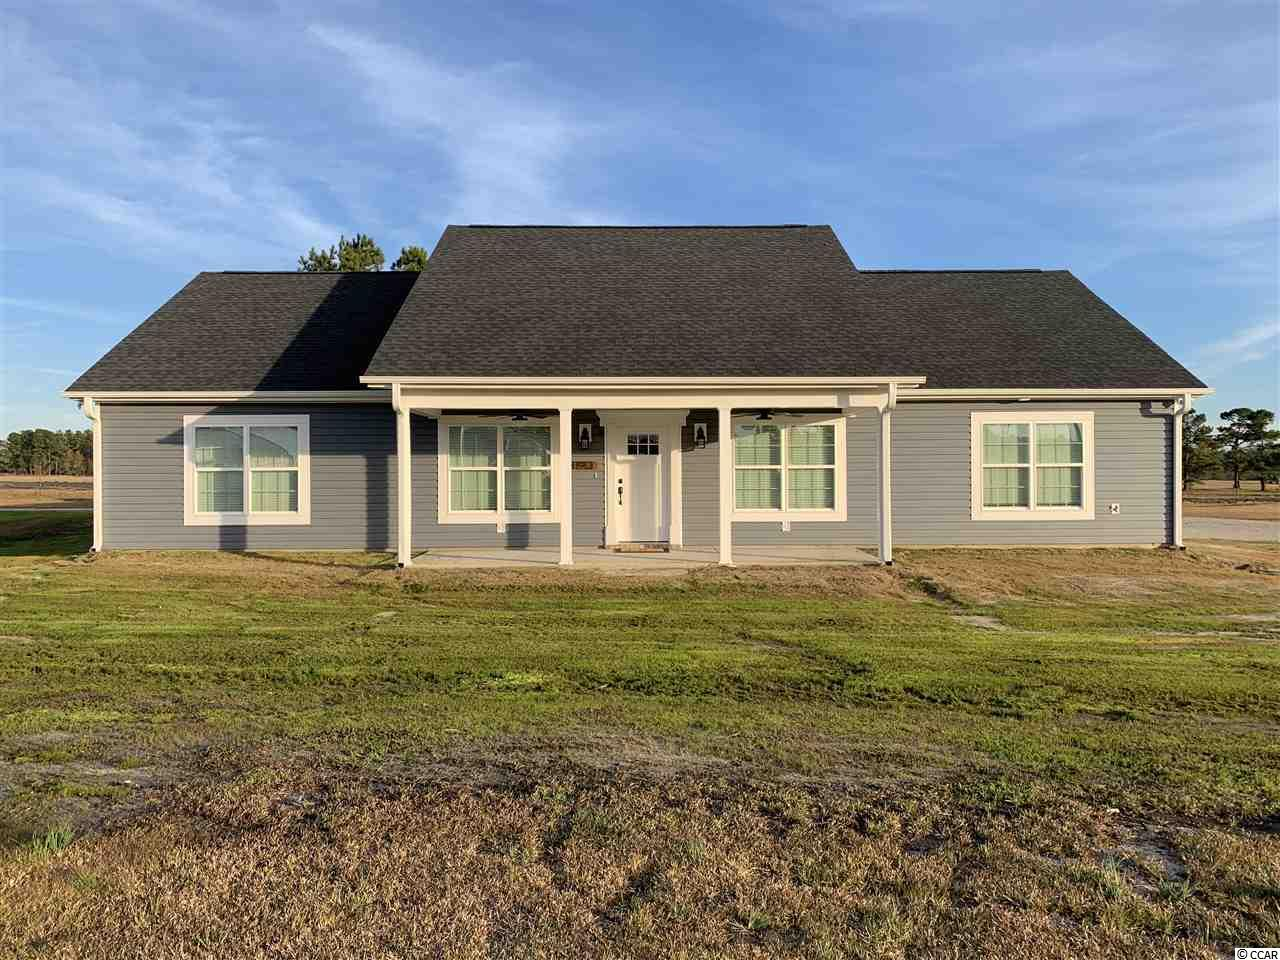 This Home is To Be Built! Come now so you can lock in the opportunity to pick out your own colors, cabinetry, counter tops and other Finishes! Home is to be on a spacious 3.3+/- Acre Lot just minutes from Hwy 22. No HOA, and plenty of space for outside storage! Located just a short 20 minute drive to the beach! The house pictured is a similar style home already built. Several Lots to choose from, and many other different homes with different floor plans. Call today to schedule your free consultation!